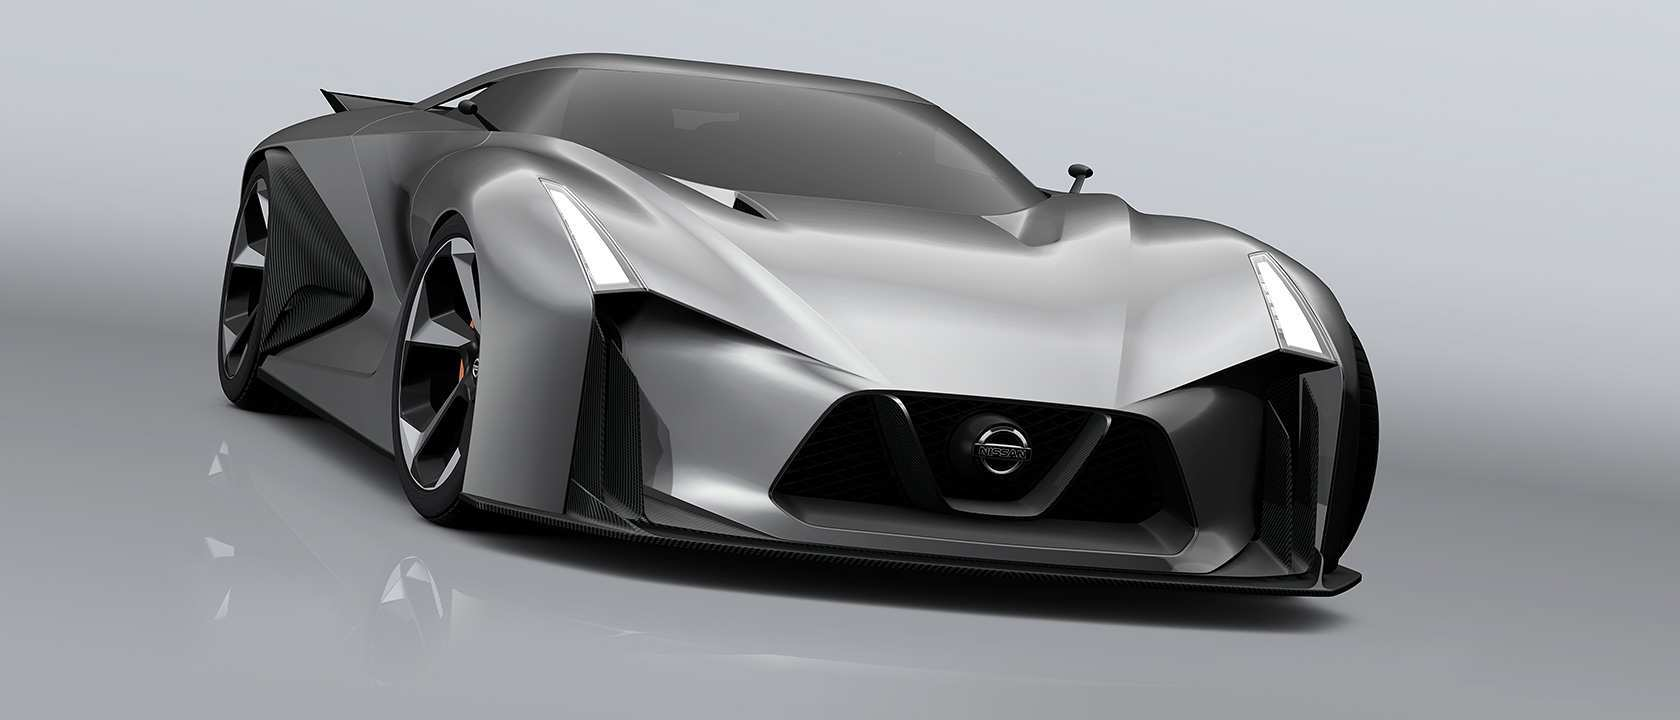 41 New Nissan Turismo 2020 Performance and New Engine for Nissan Turismo 2020